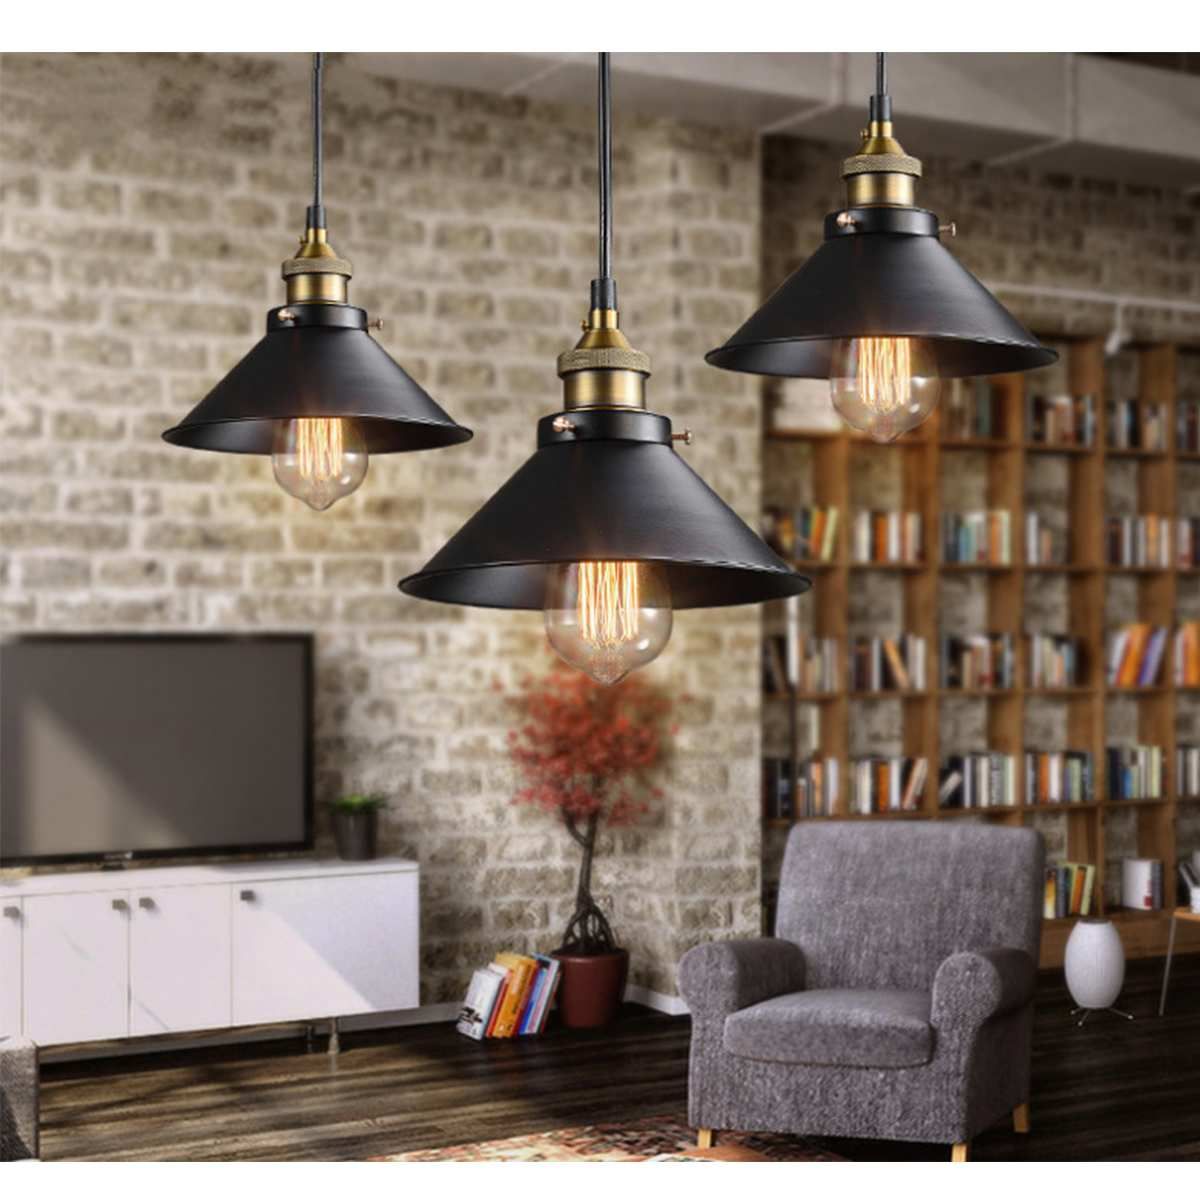 22cm Vintage Country Ceiling Lights Led Ceiling Lamp Loft Iron Home Bar Cafe Lamp Lighting For Living Room Decor